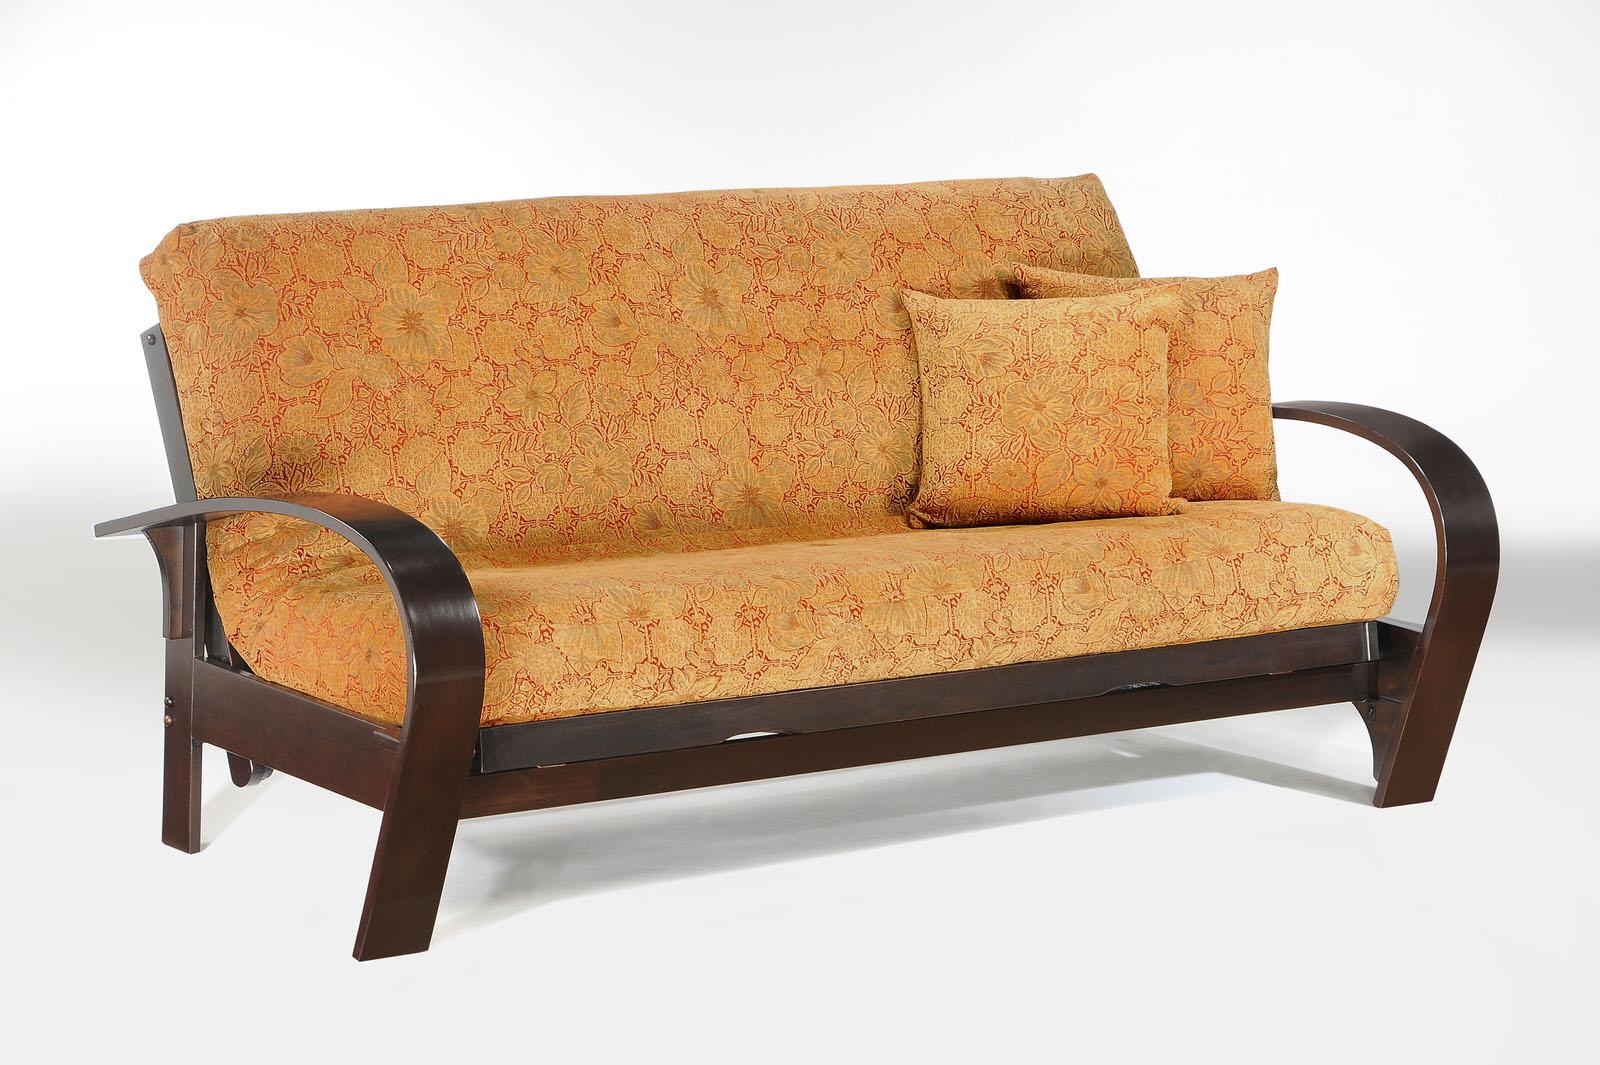 Futon Frame By Night Day Furniture